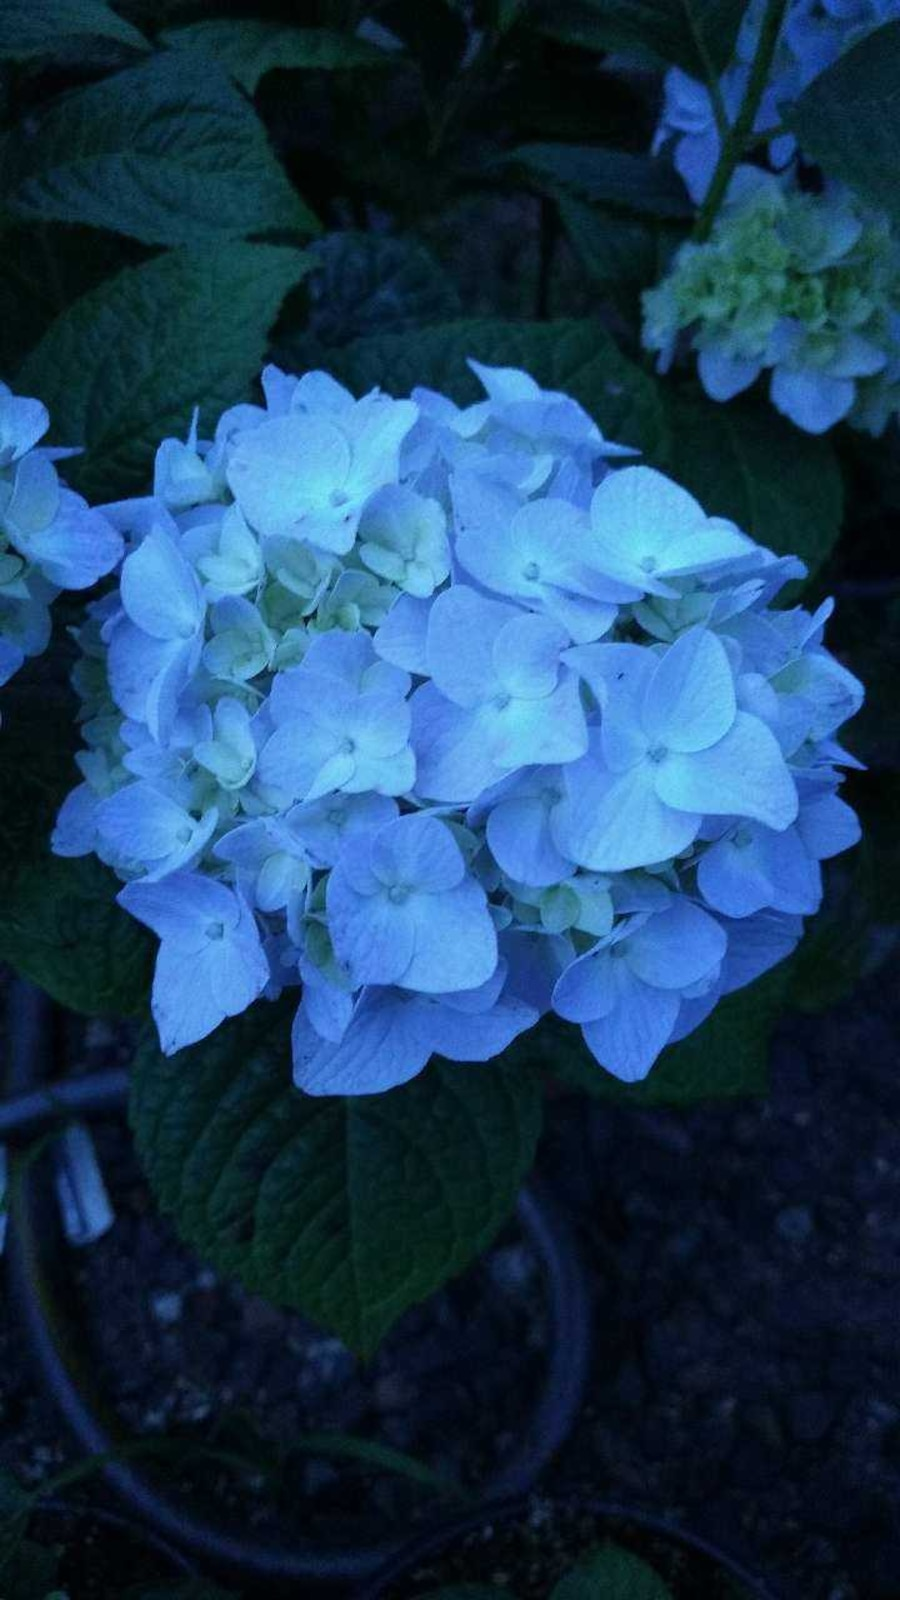 Locally grown Hydrangeas for sale! - United States